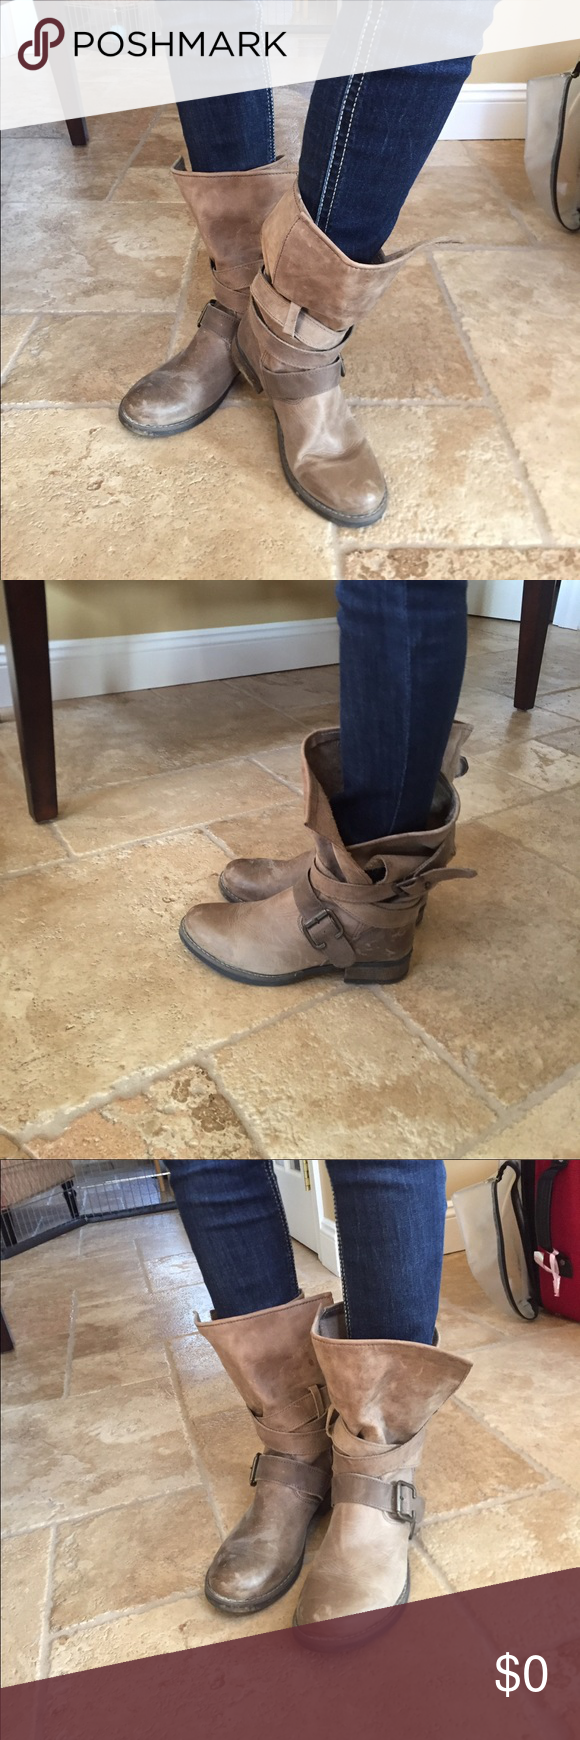 extra Steve Madden boot pics extra pictures Steve Madden Shoes Ankle Boots & Booties